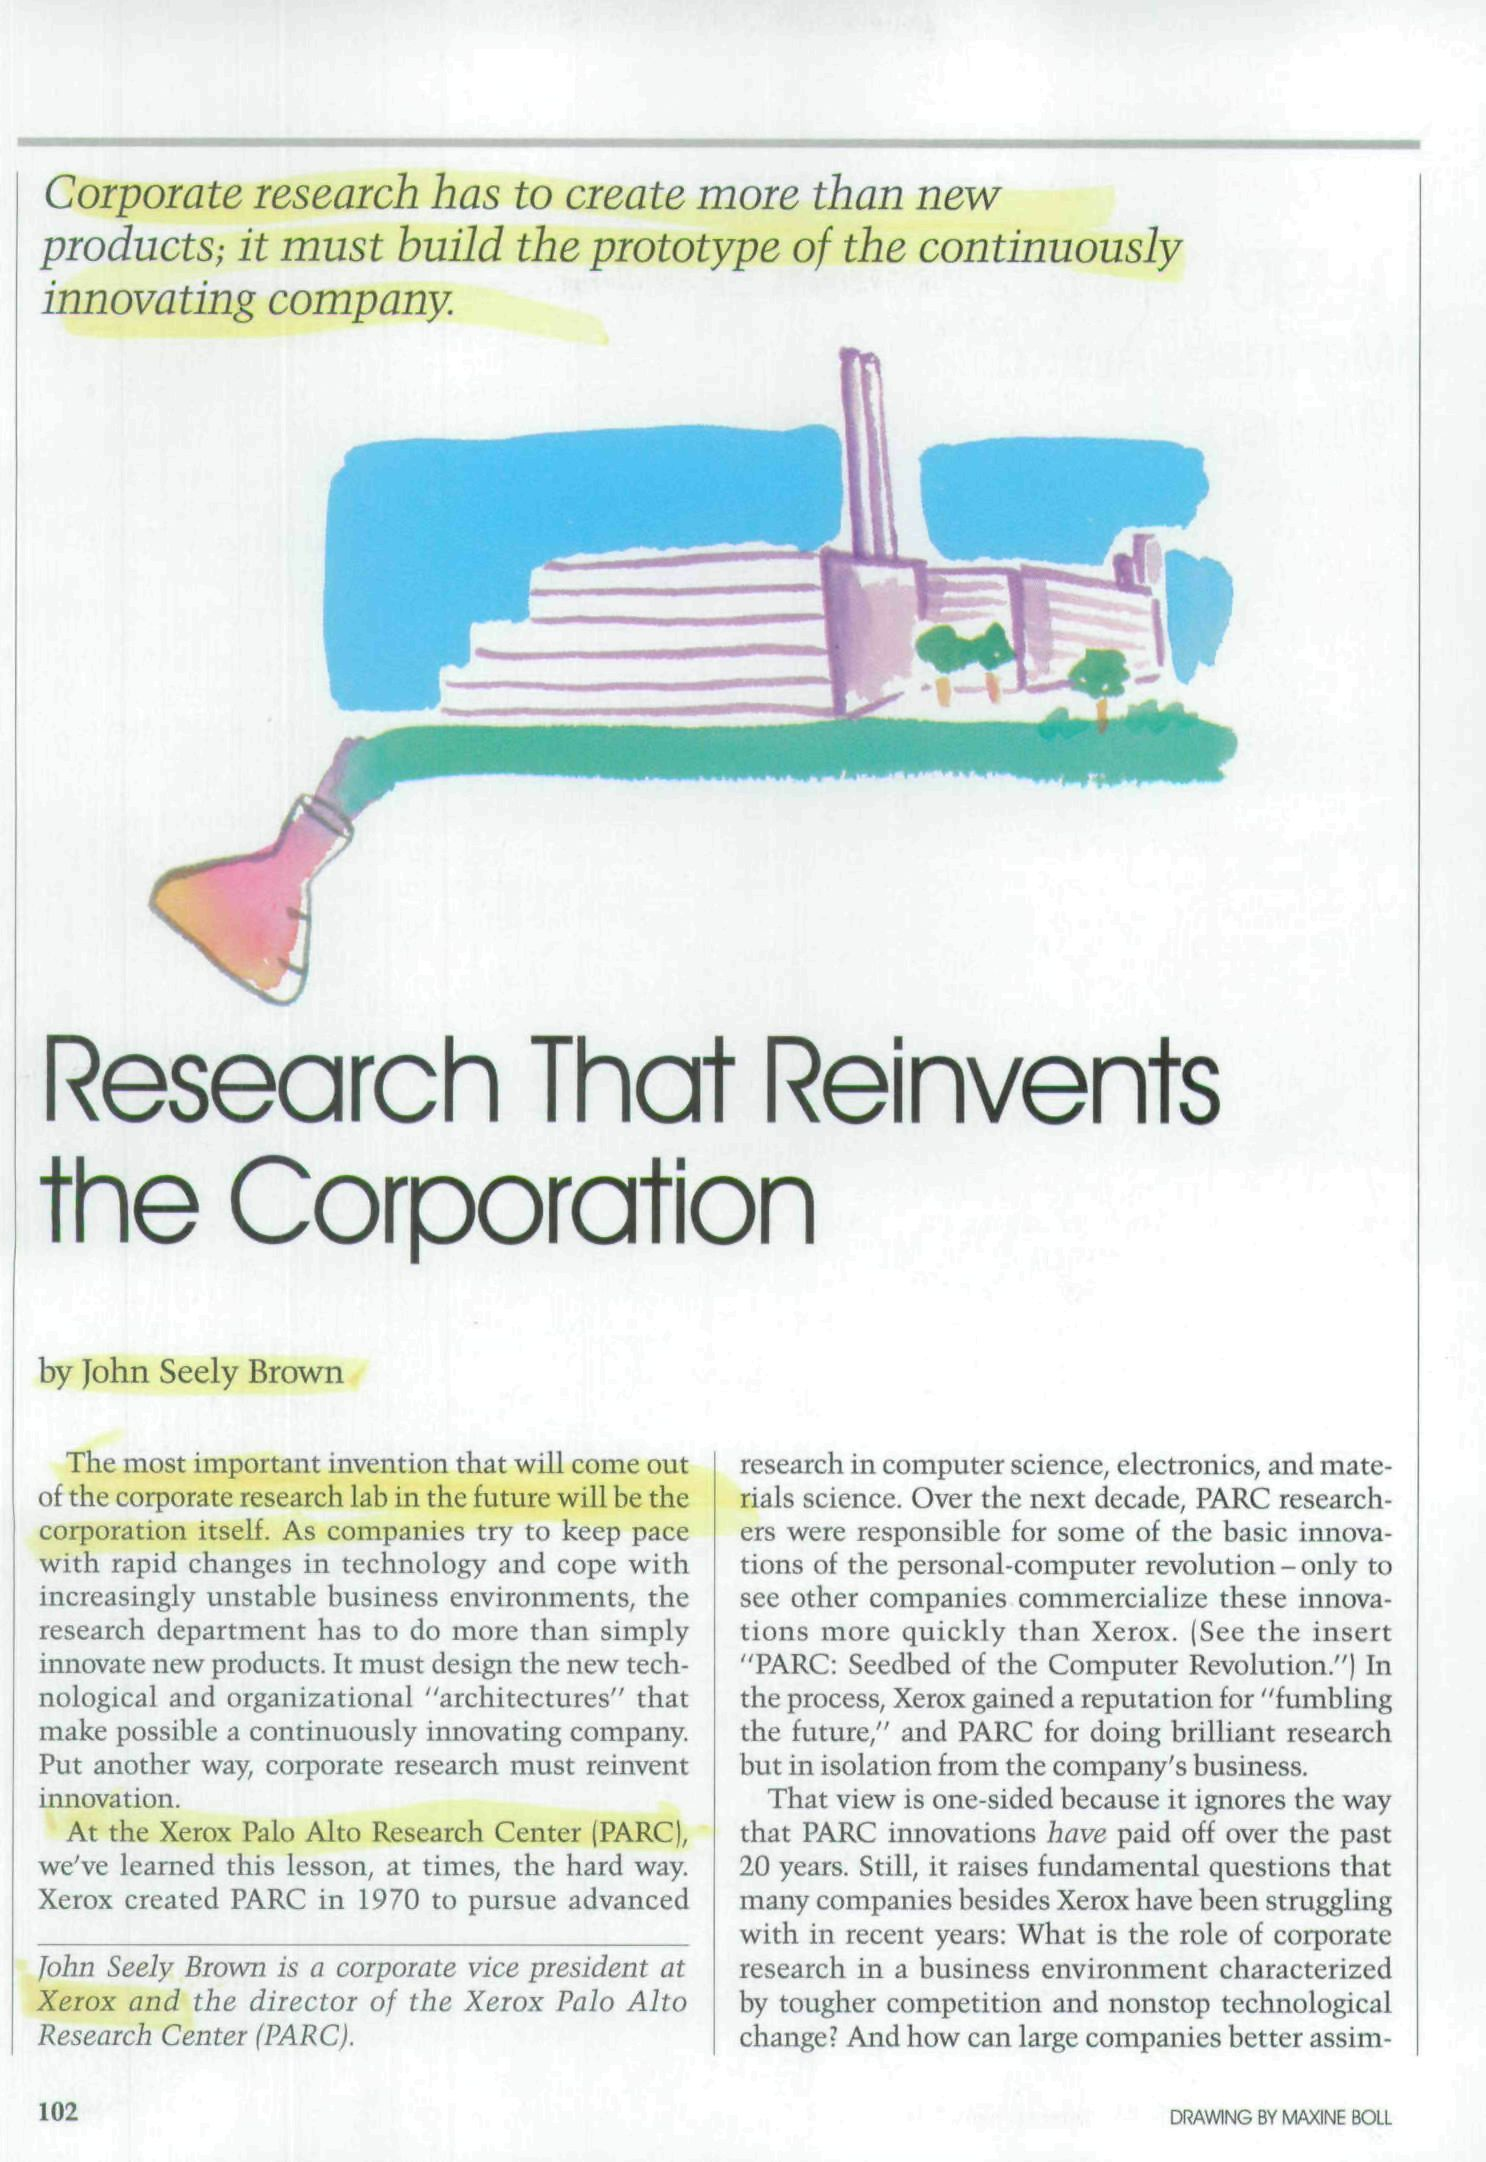 Corporate research has to create more than new products; it must build the prototype of the continuously innovating company.